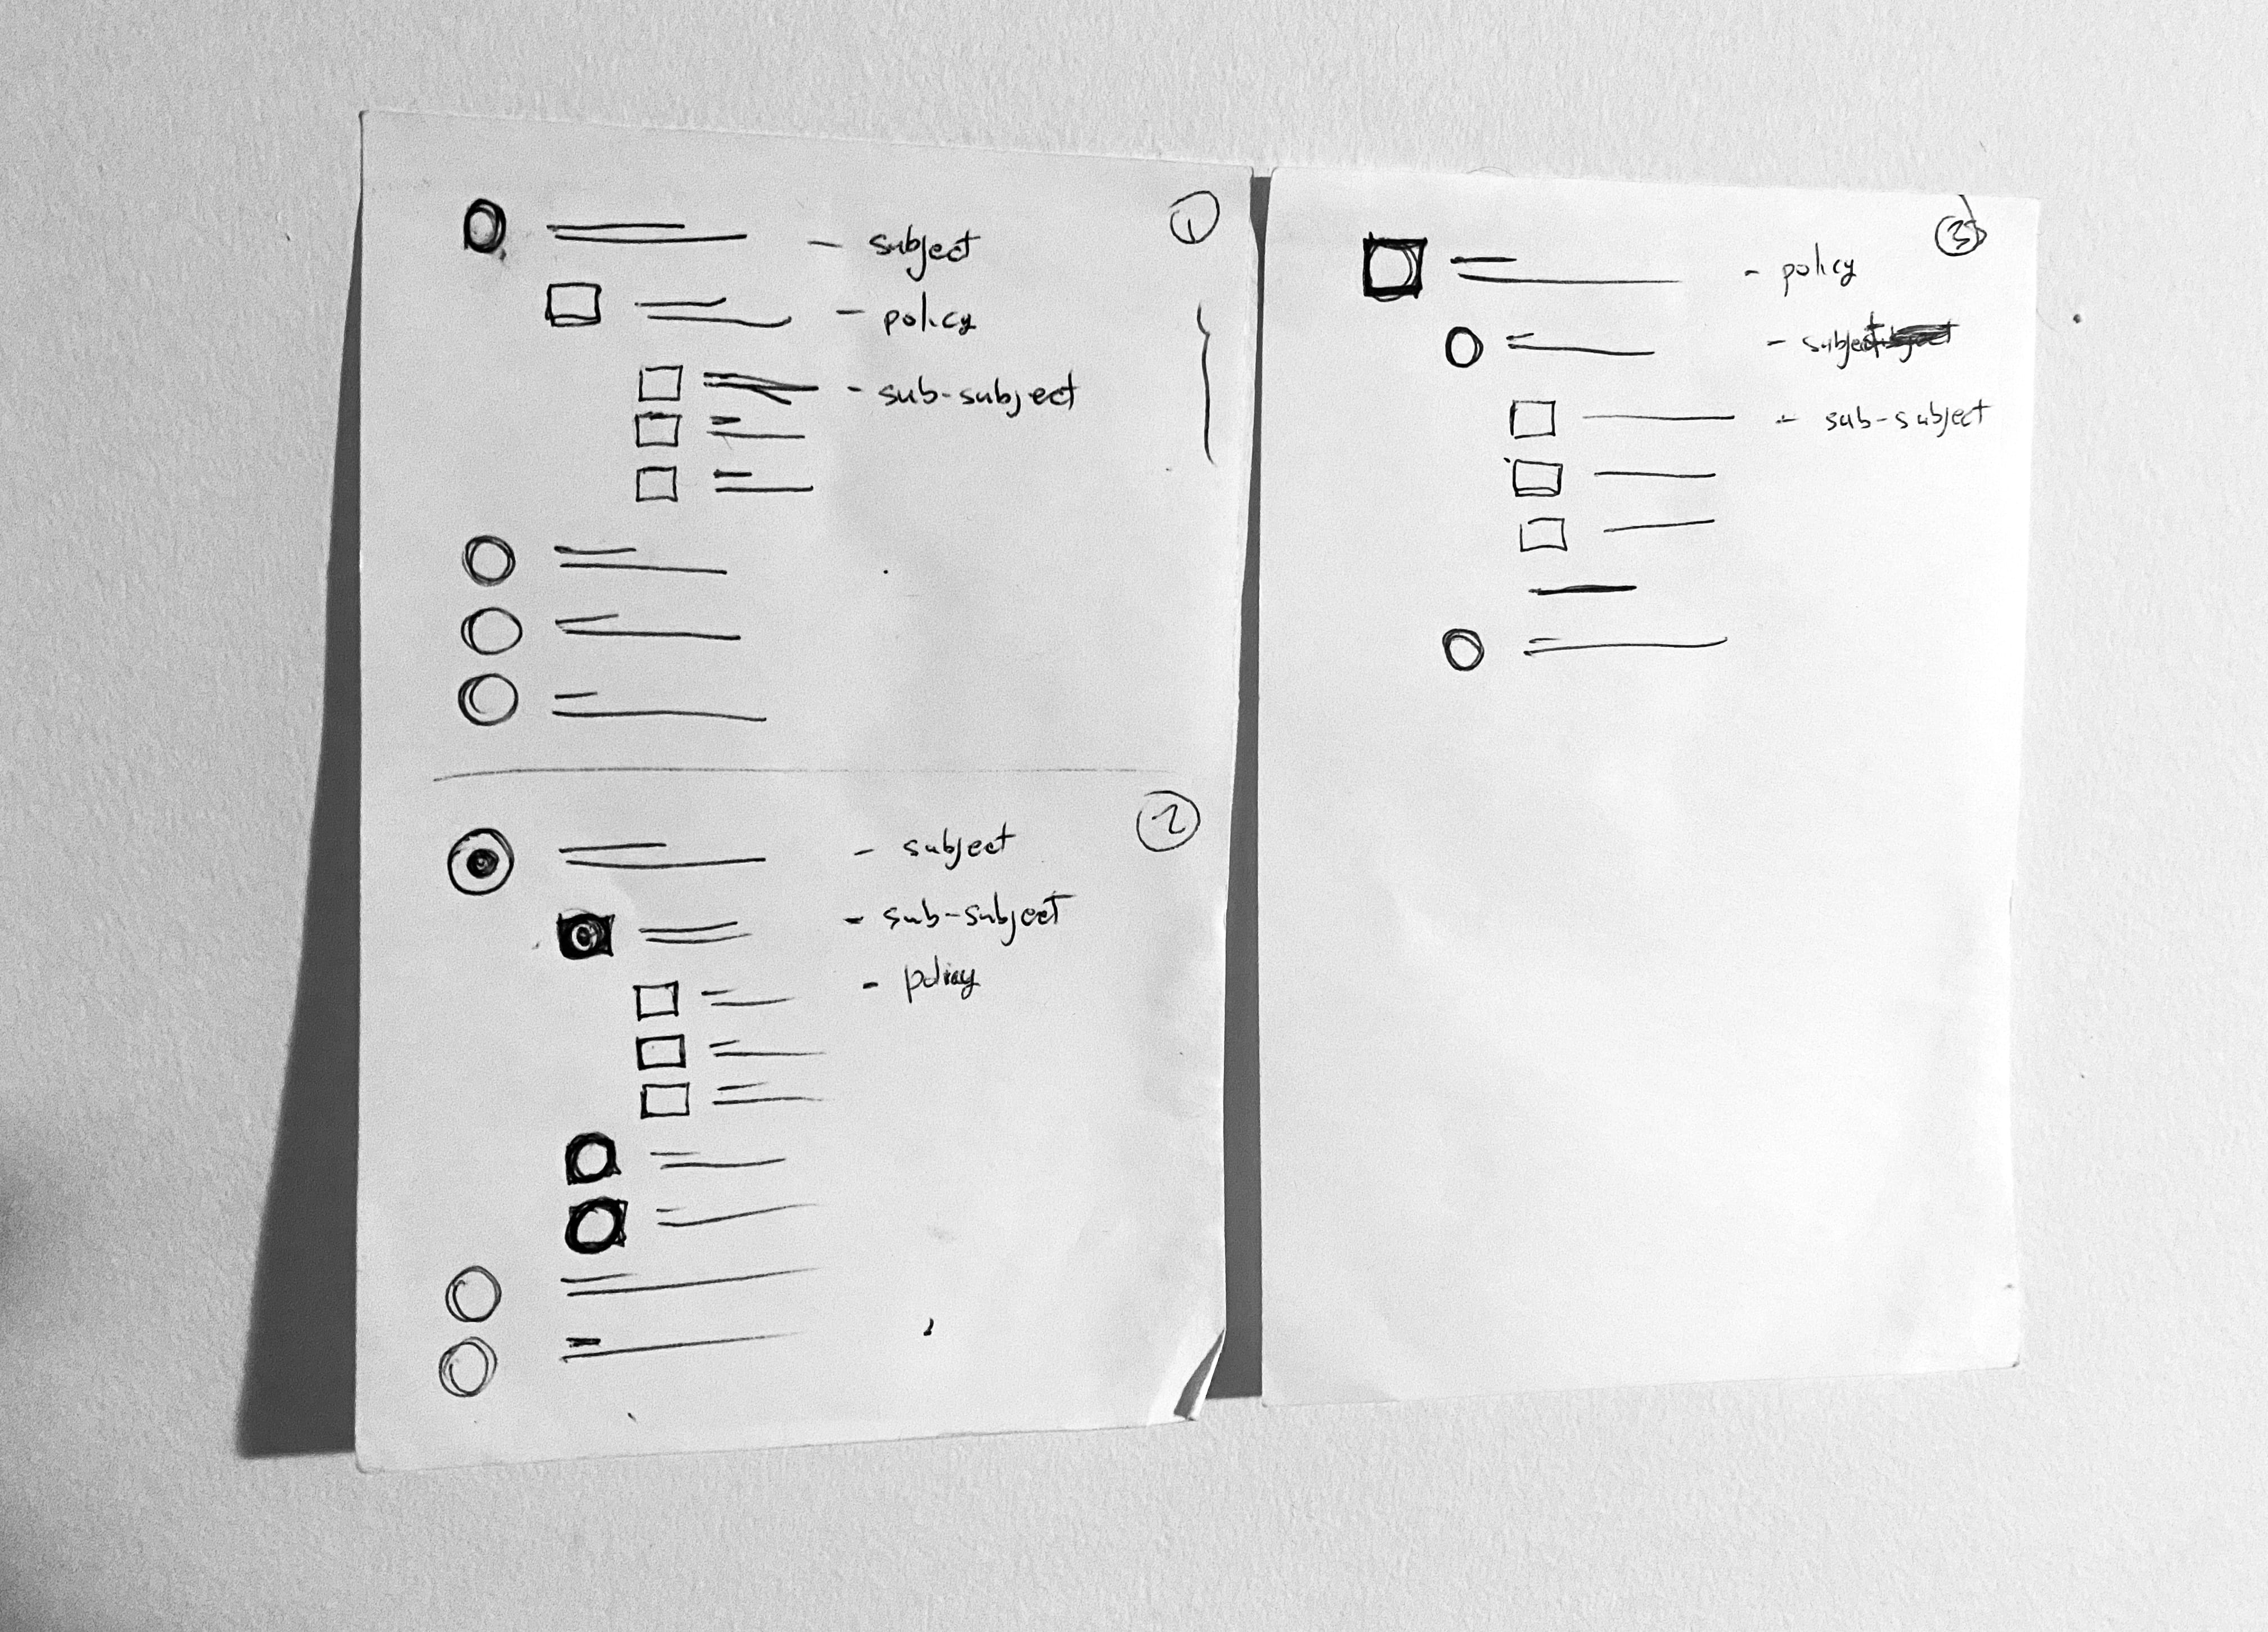 Secure email dynamic form: Sketching based on customer challenges